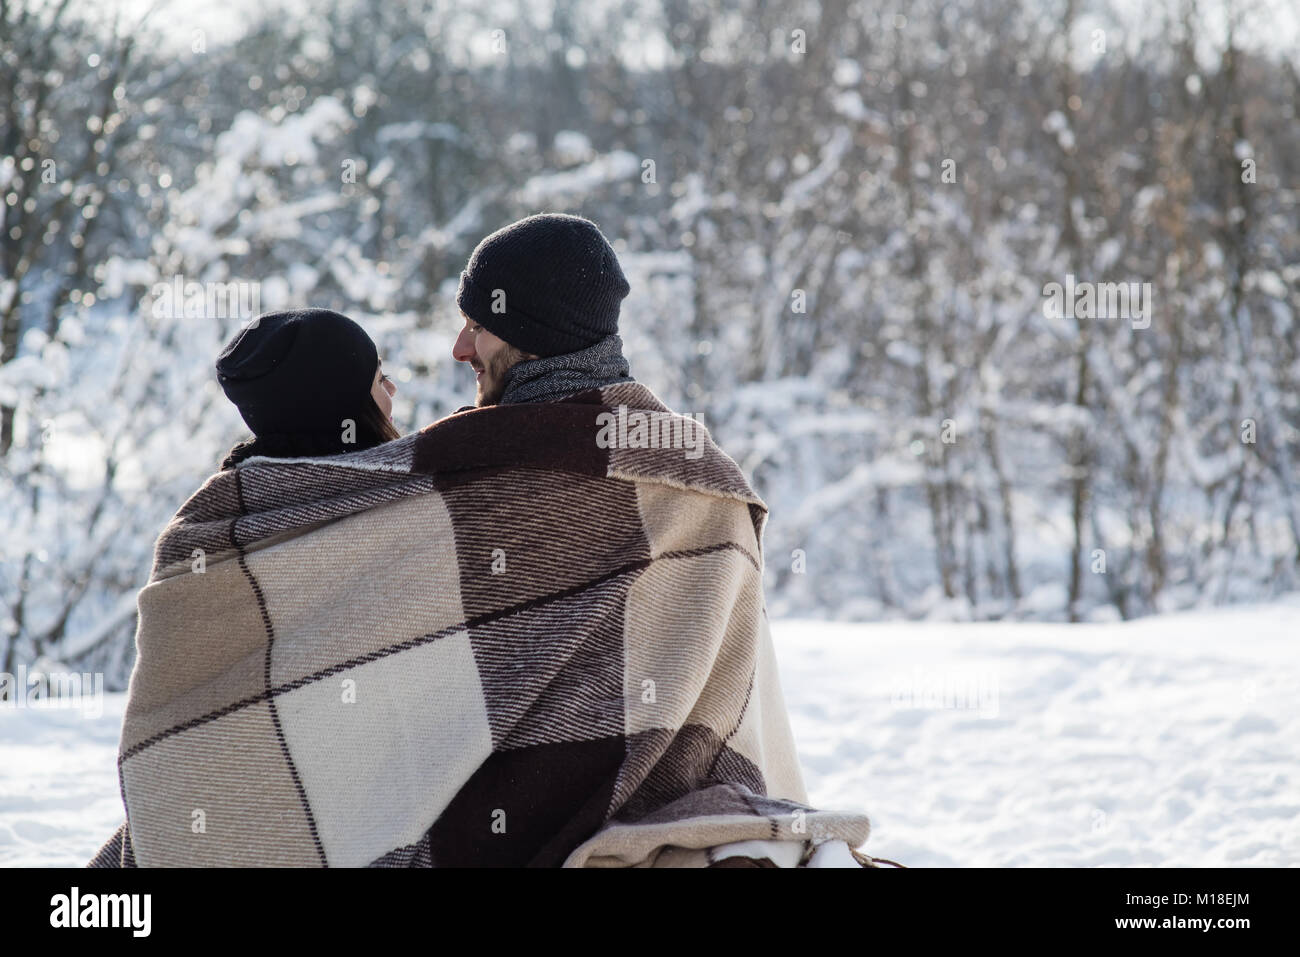 Boy and girl in black hats and plaid sitting on the snow background. Man and woman face each other. - Stock Image